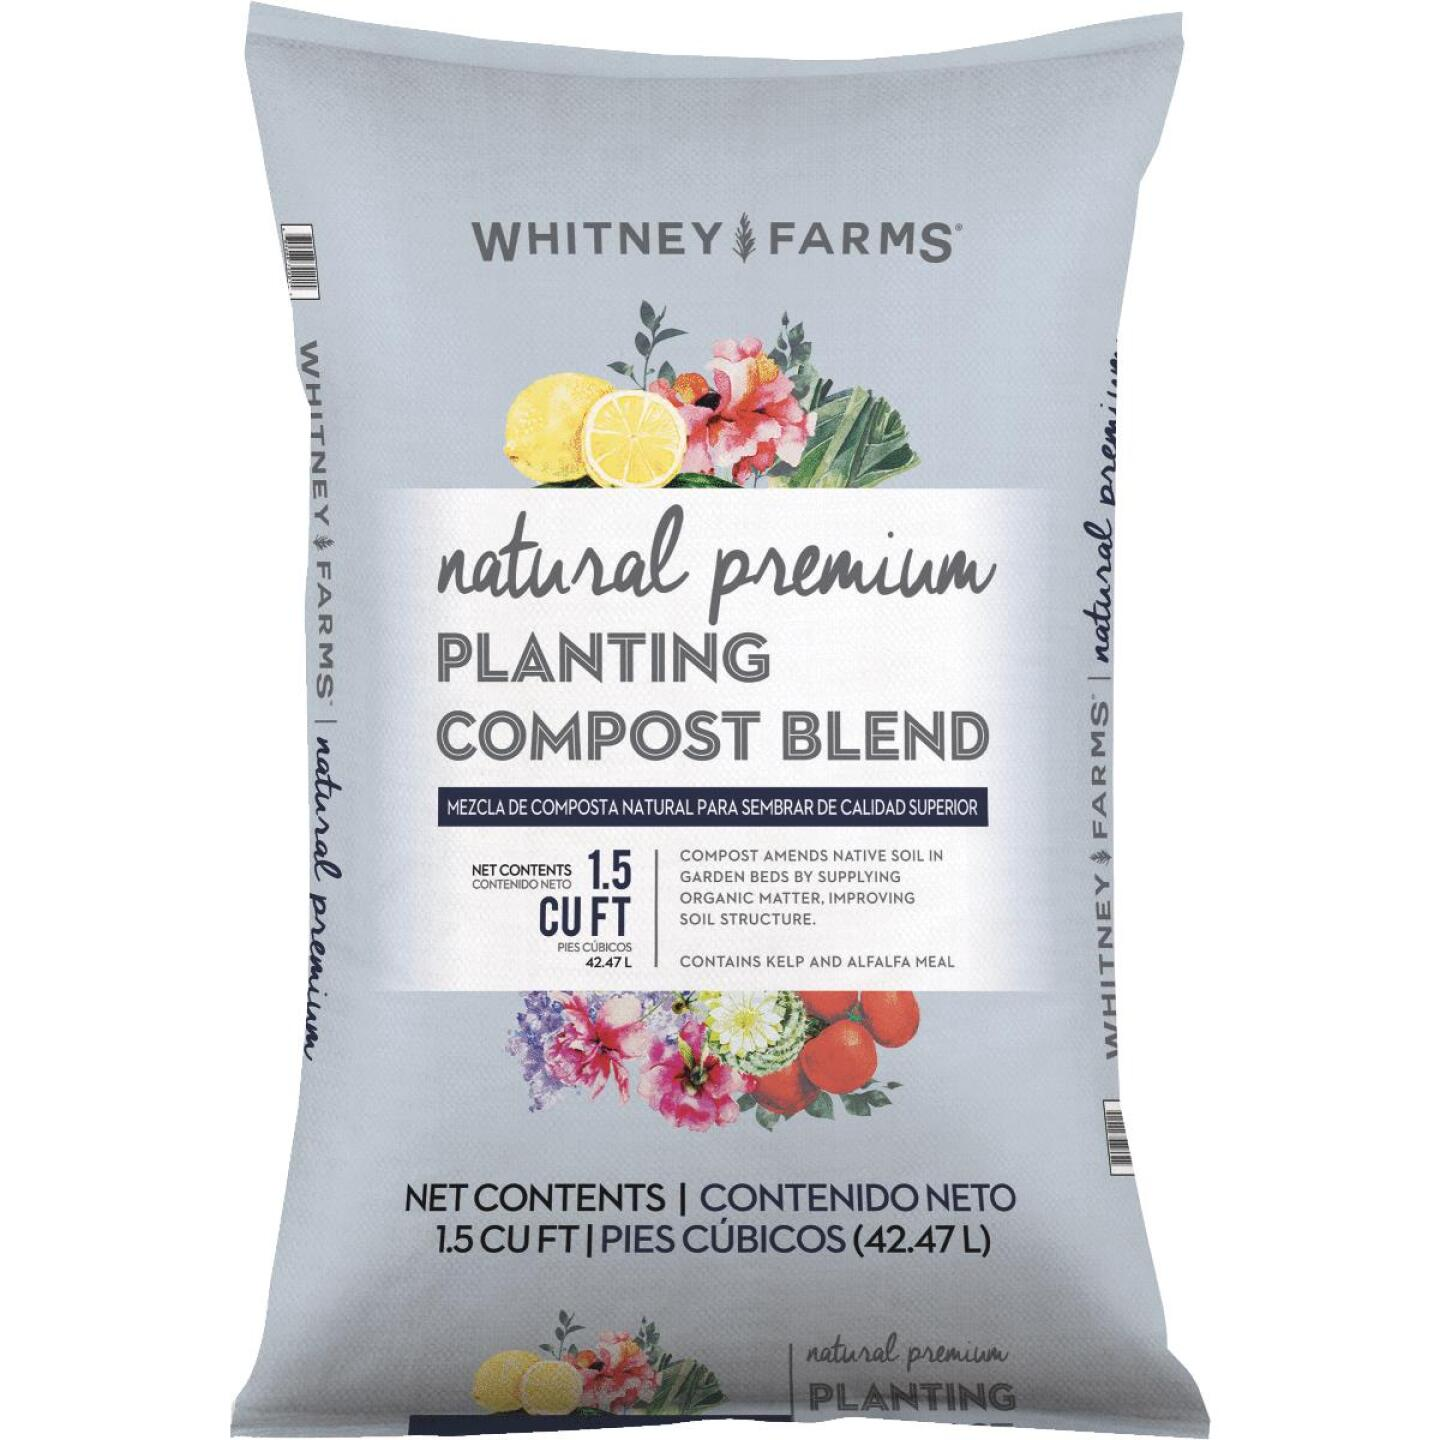 Whitney Farms Natural Premium 1.5 Cu. Ft. Lawn & Garden Compost Image 1